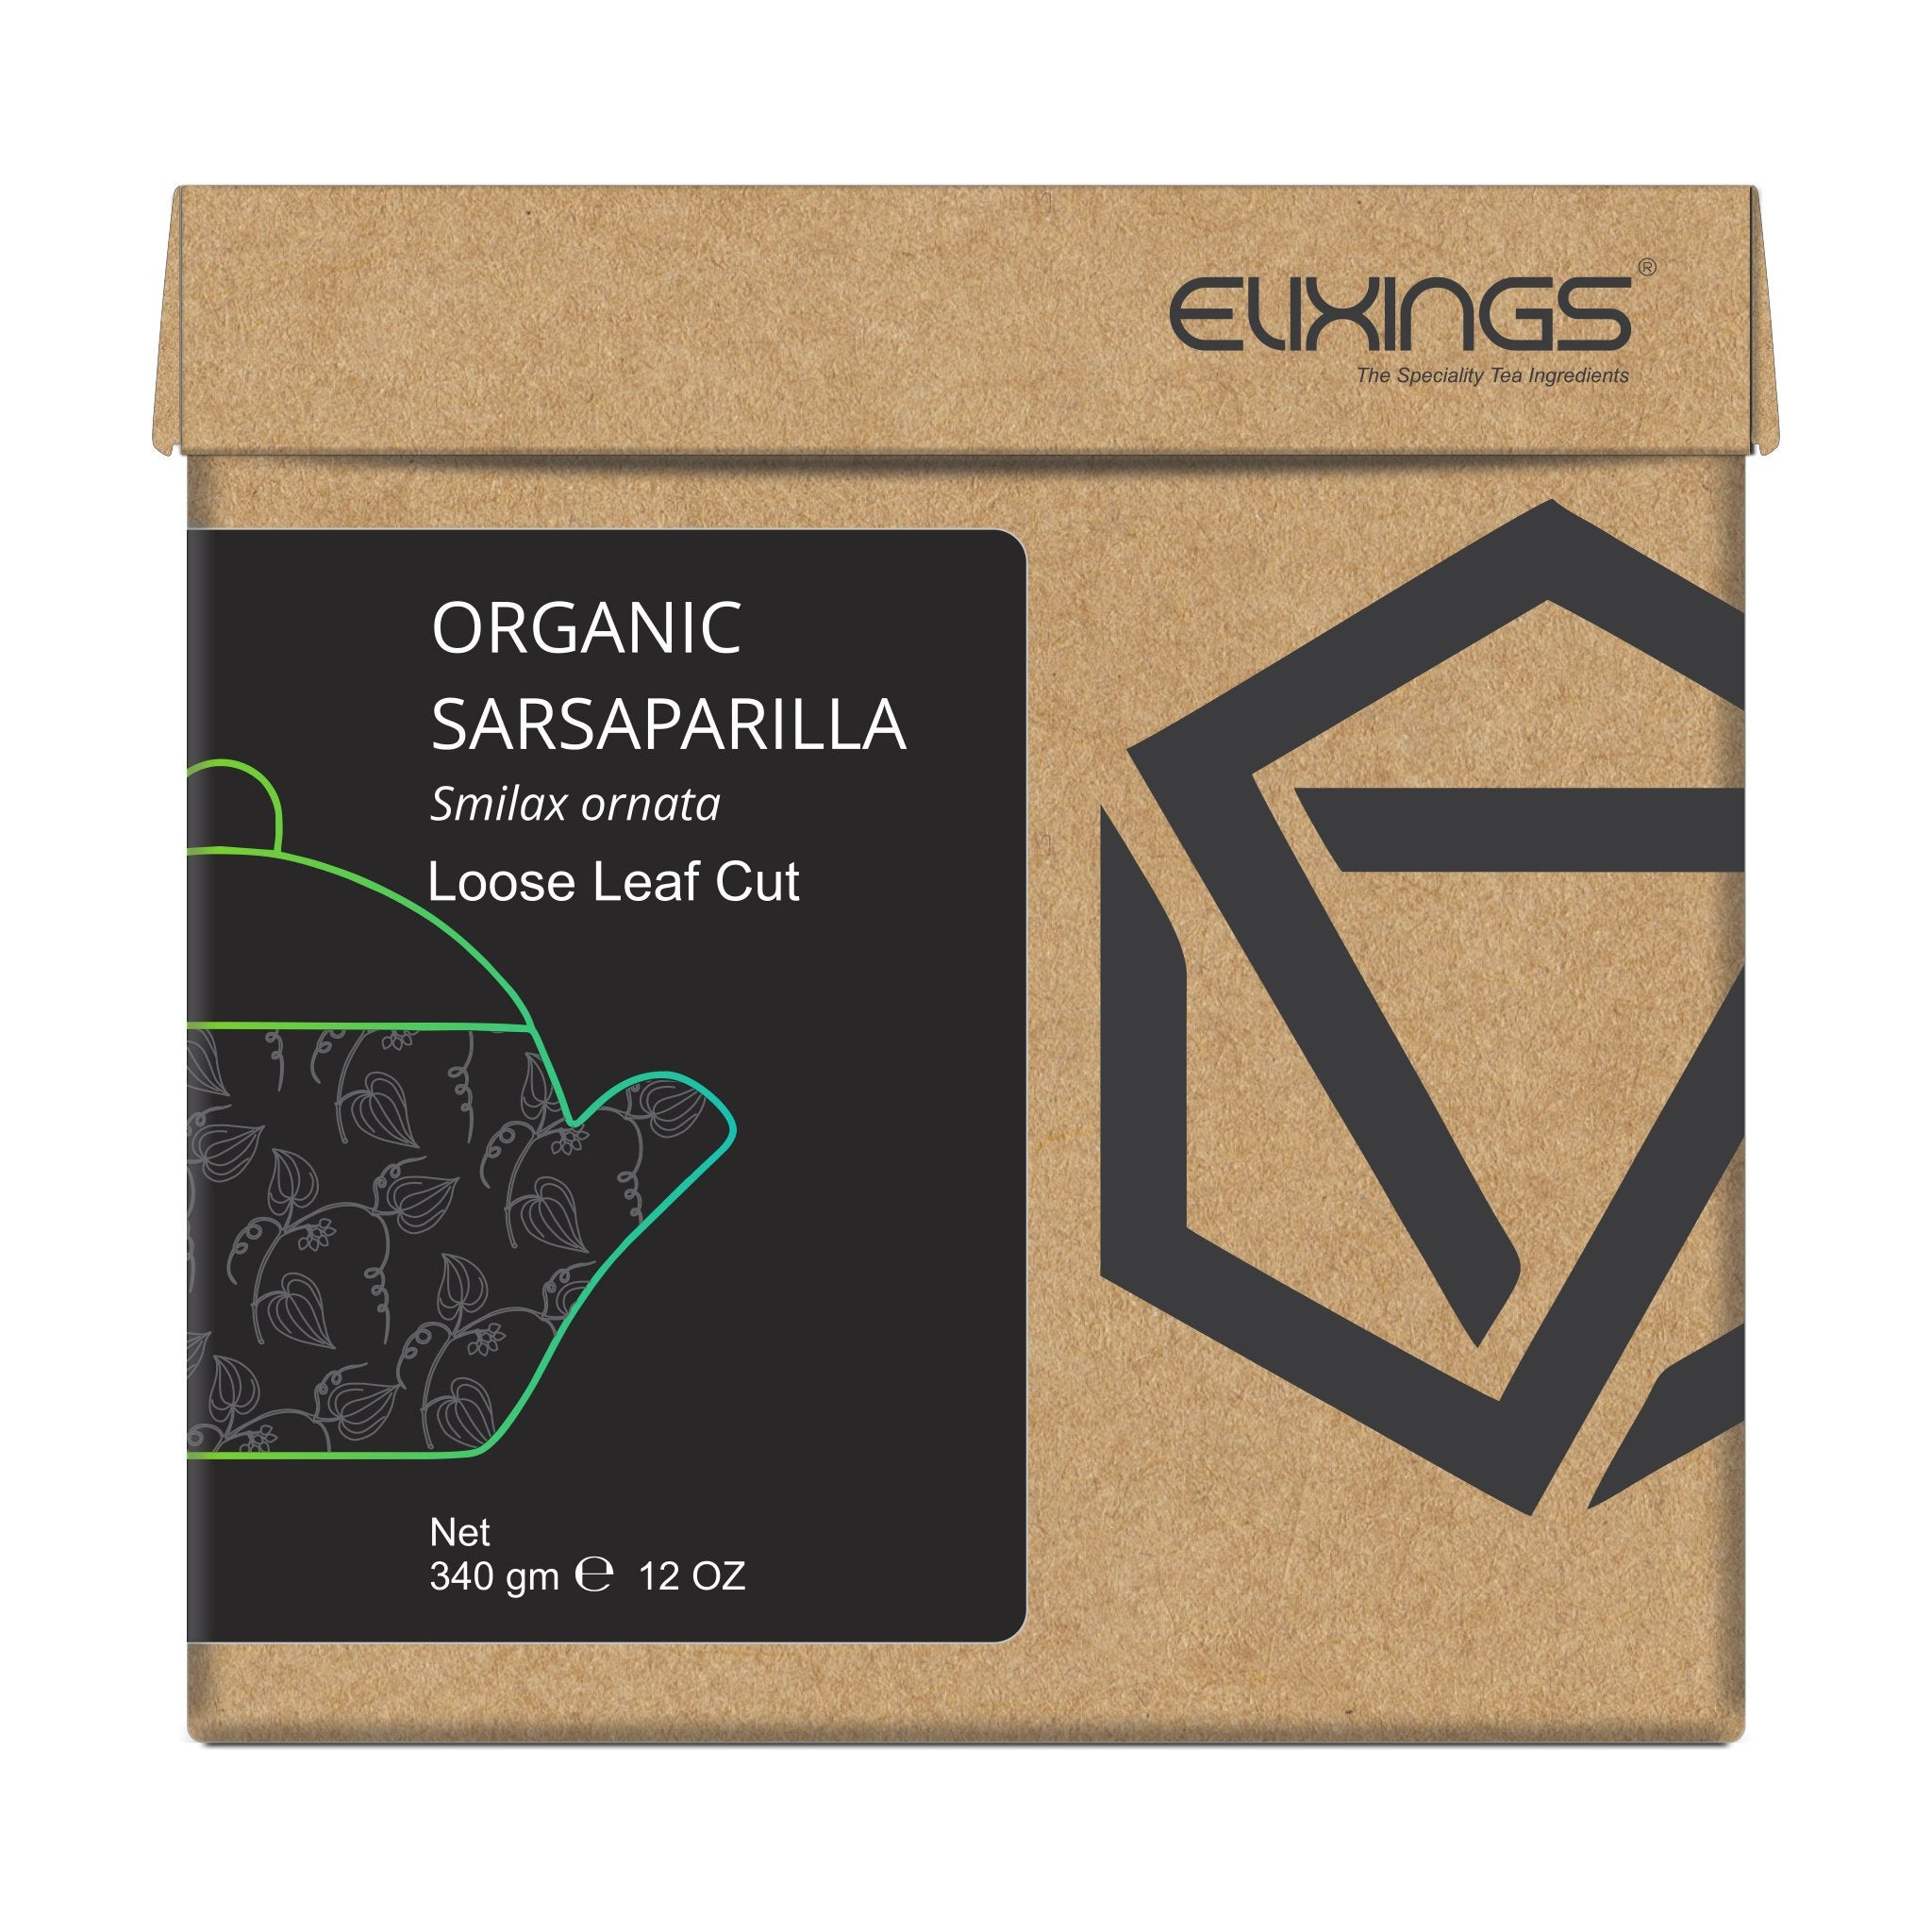 Organic Sarsaparilla Loose Leaf Cut